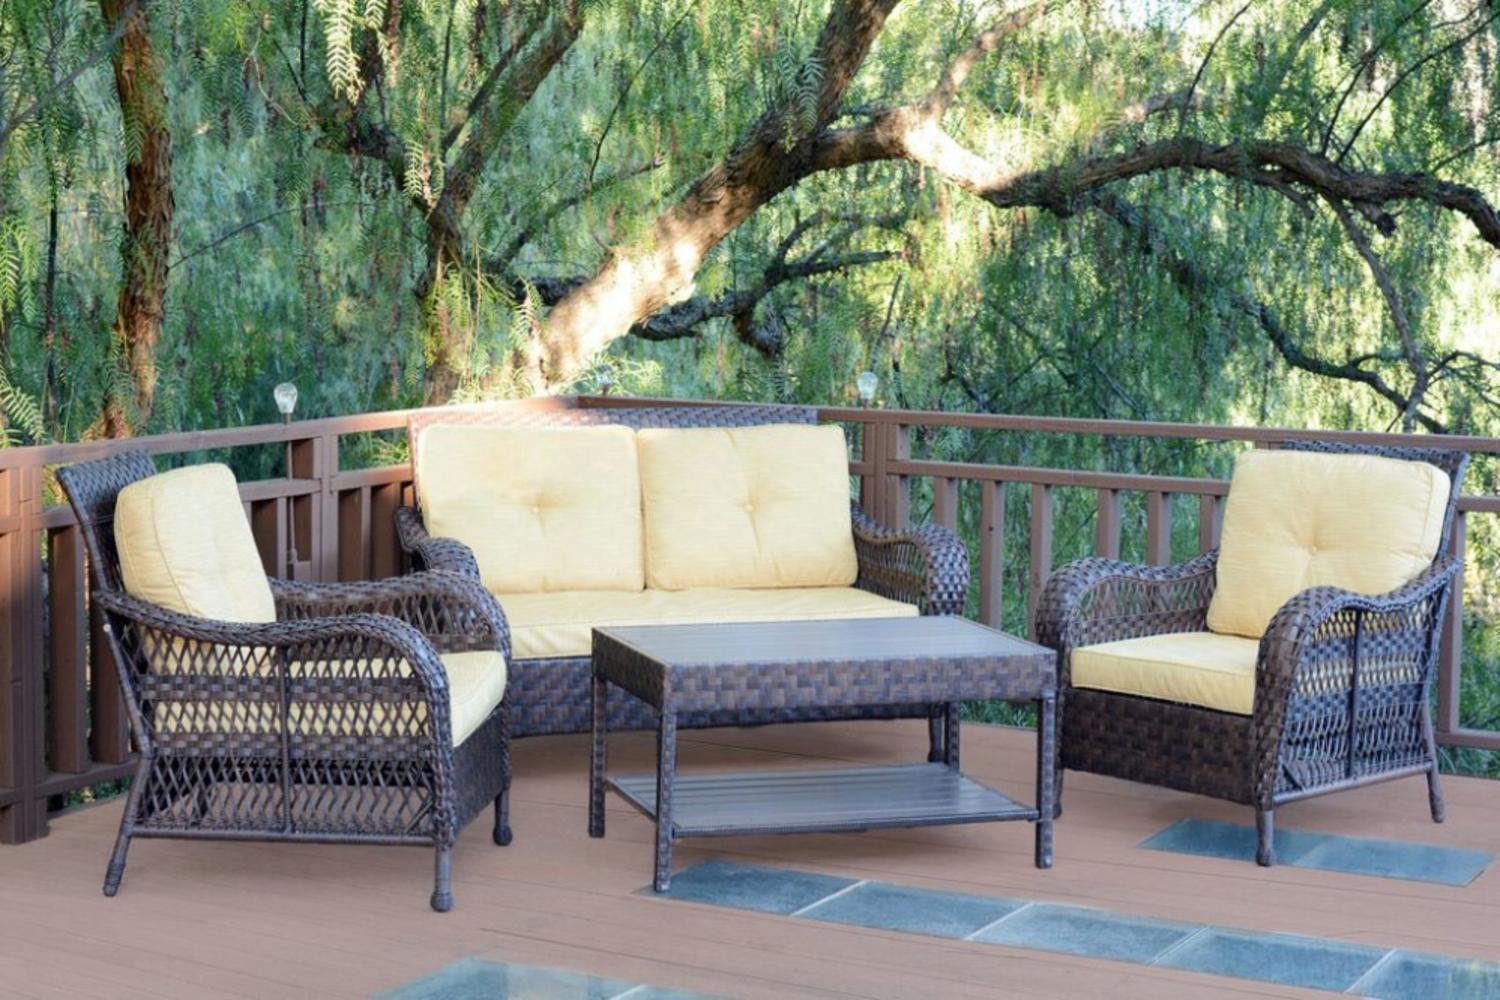 resin wicker patio furniture sets 4-Piece Espresso Resin Wicker Outdoor Patio Conversation